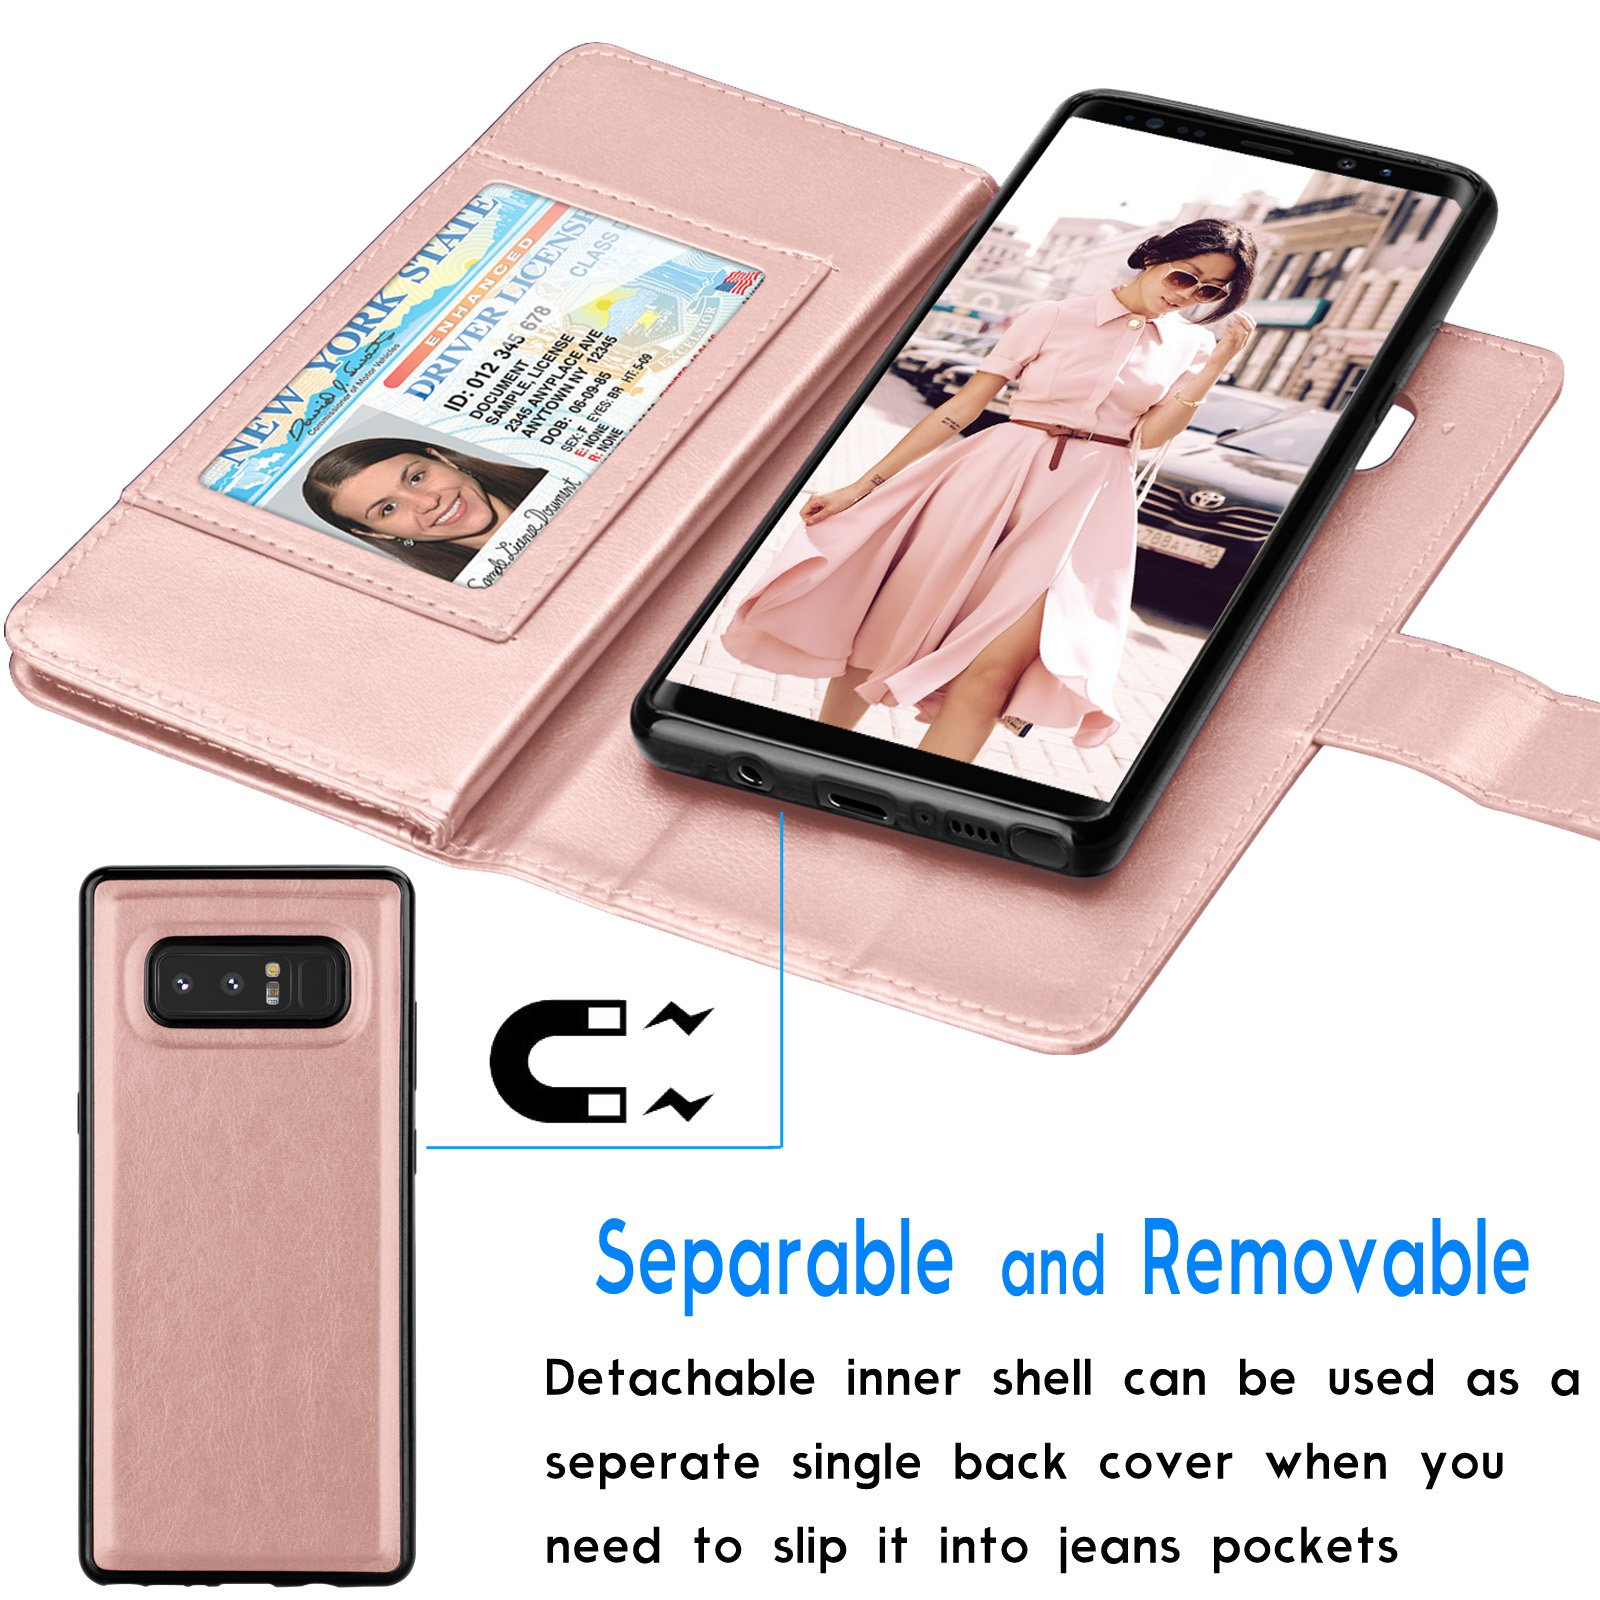 Tekcoo For Galaxy Note 8 Wallet Case, Tekcoo Samsung Galaxy Note 8 PU Leather Case, Luxury ID Cash Credit Card Slots Holder Carrying Flip Cover [Detachable Magnetic Hard Case] & Kickstand - Rose Gold by Tekcoo (Image #4)